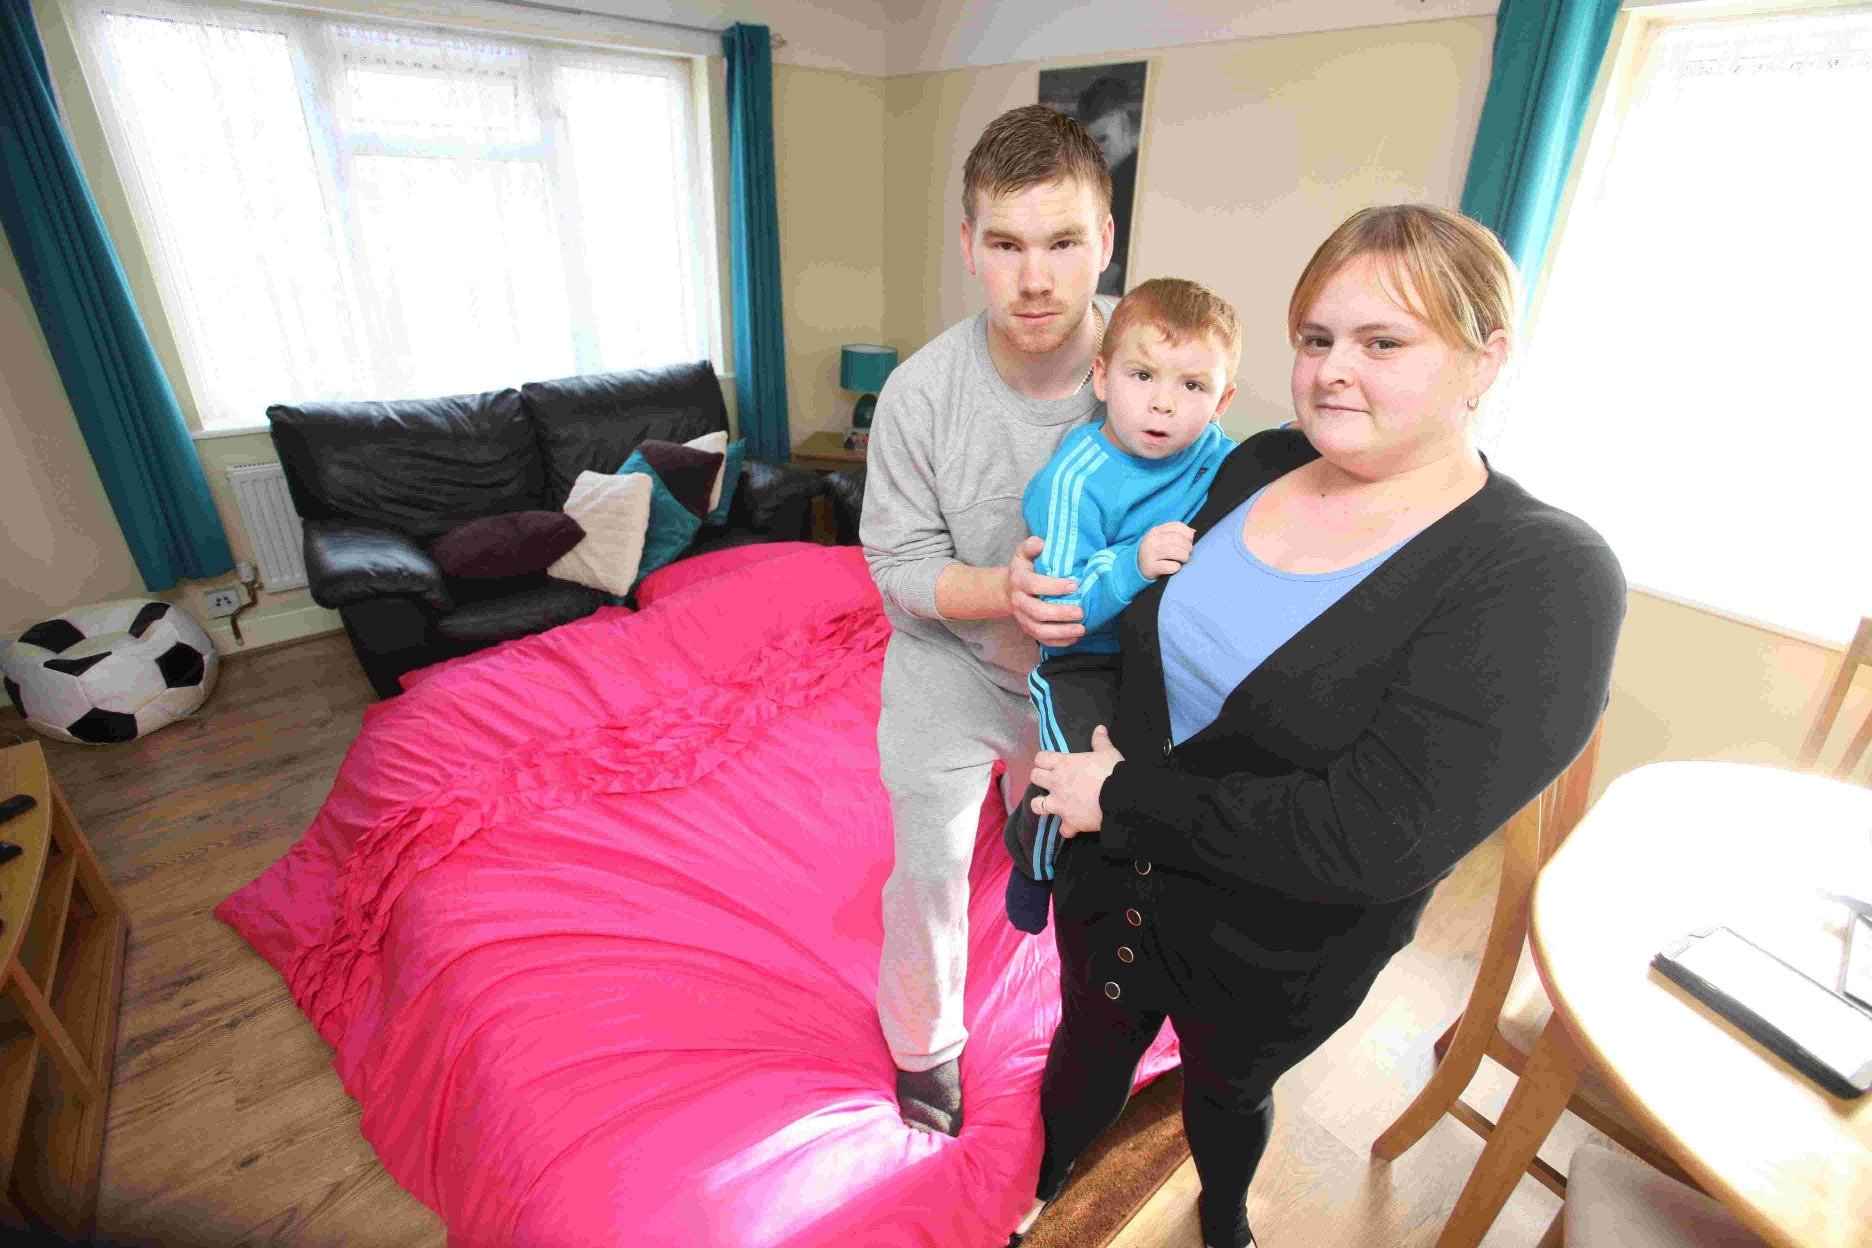 Couple fear for sick son's health in mouldy flat